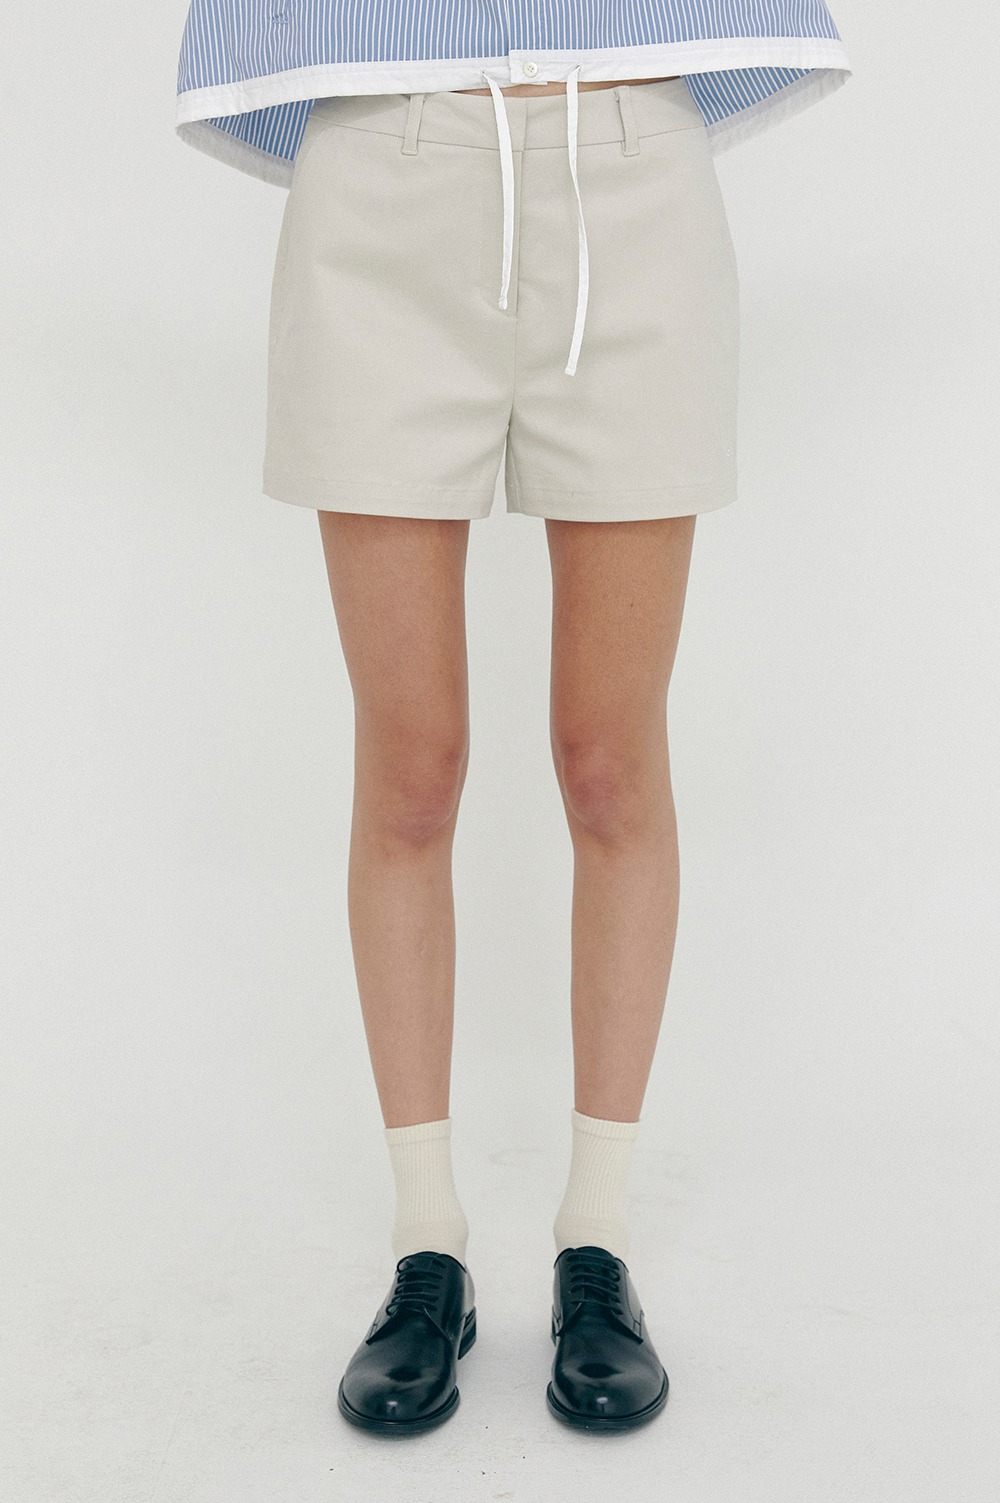 clove - [SS21 clove] Club Cotton Shorts Beige